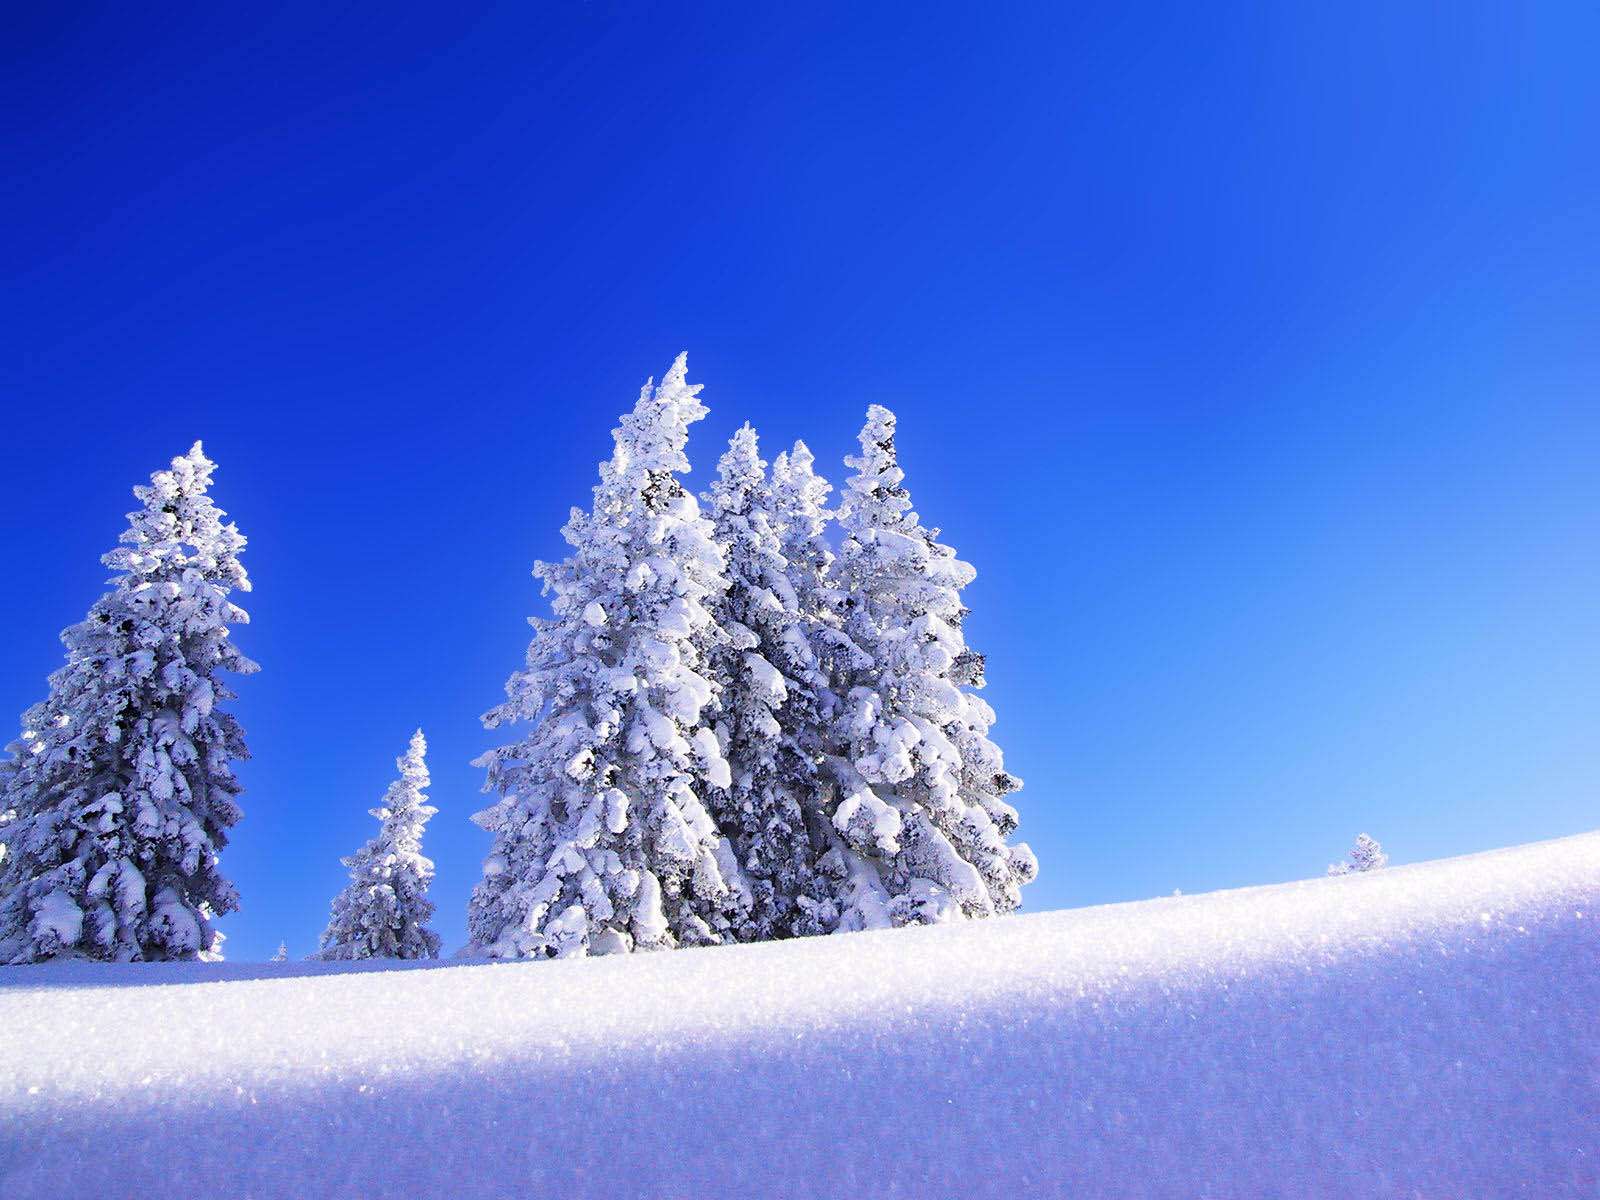 wallpapers Snow Wallpapers 1600x1200